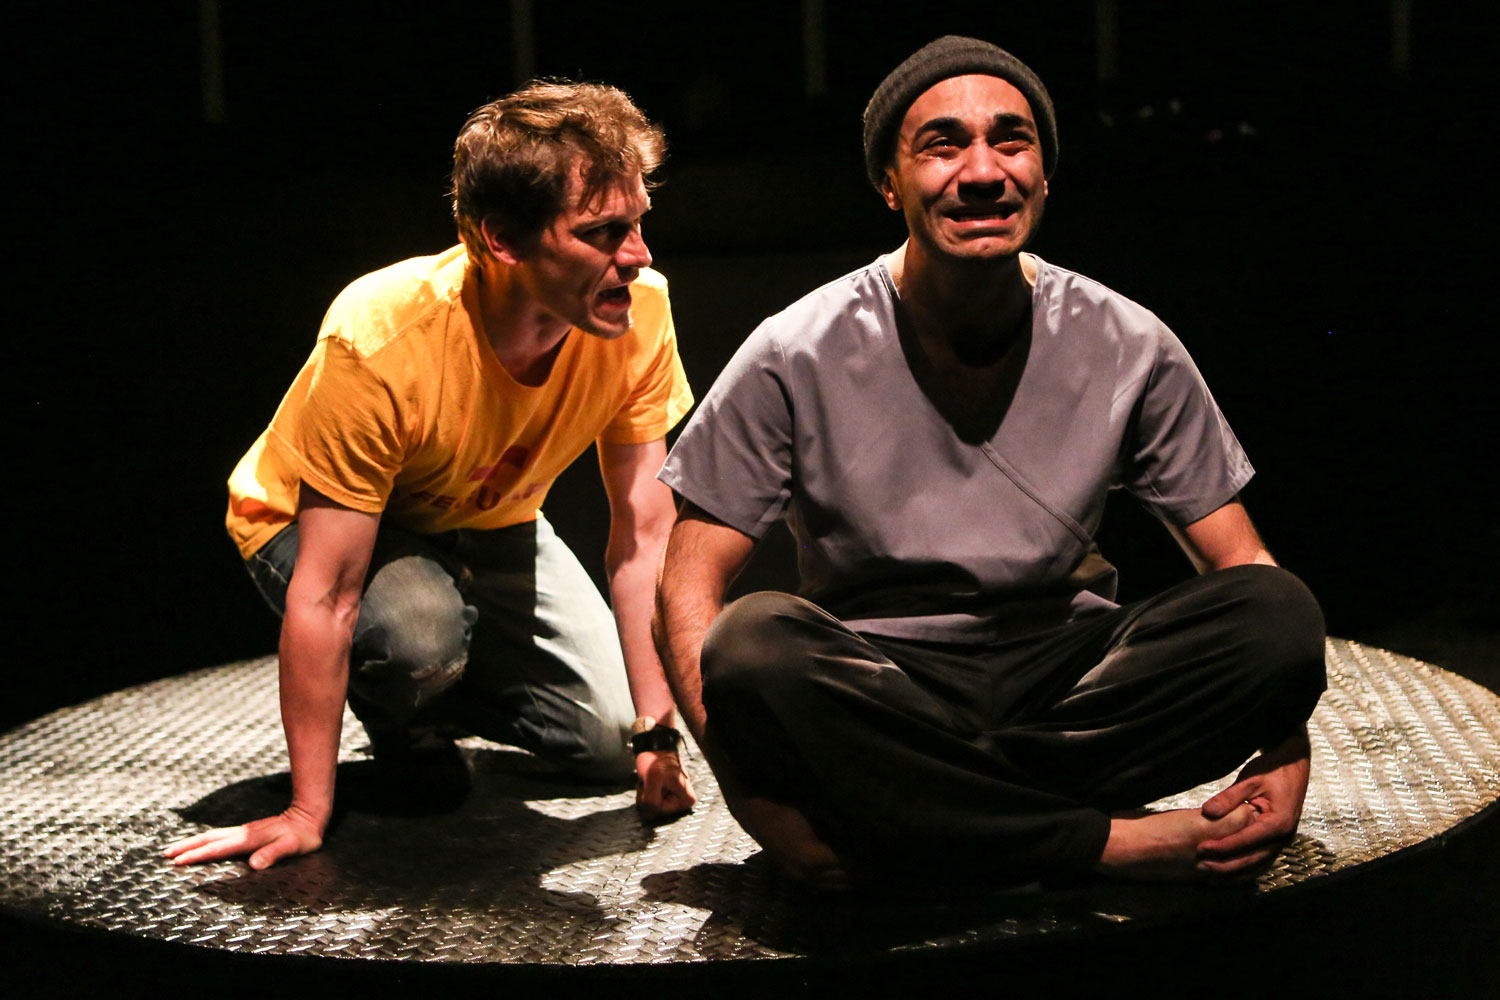 Patrick Bussink and Maboud Ebrahimzadeh as Jesus and Judas